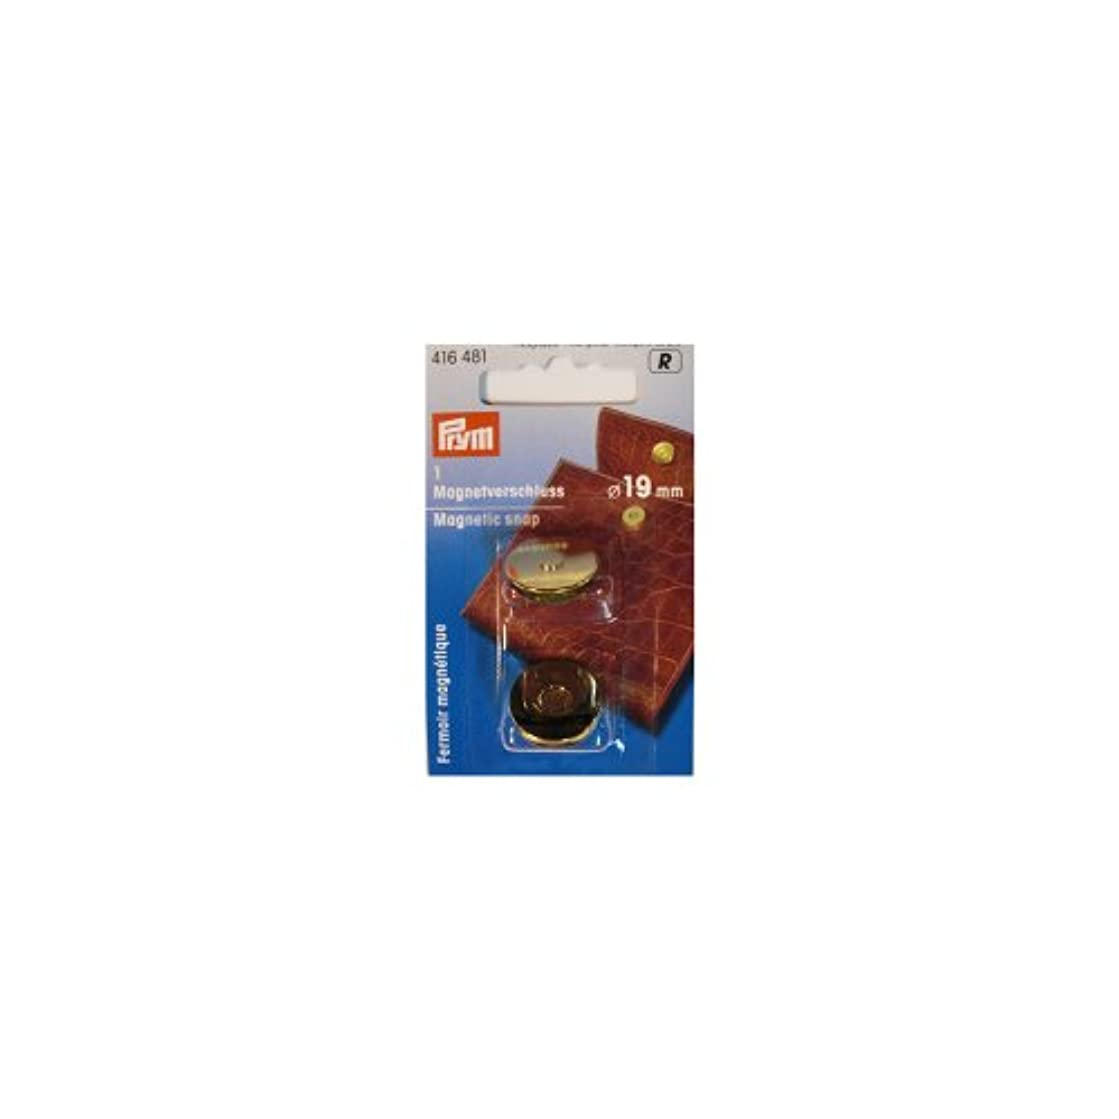 PRYM 416481 Magnetic snap Size 19mm gold-coloured, 1 piece